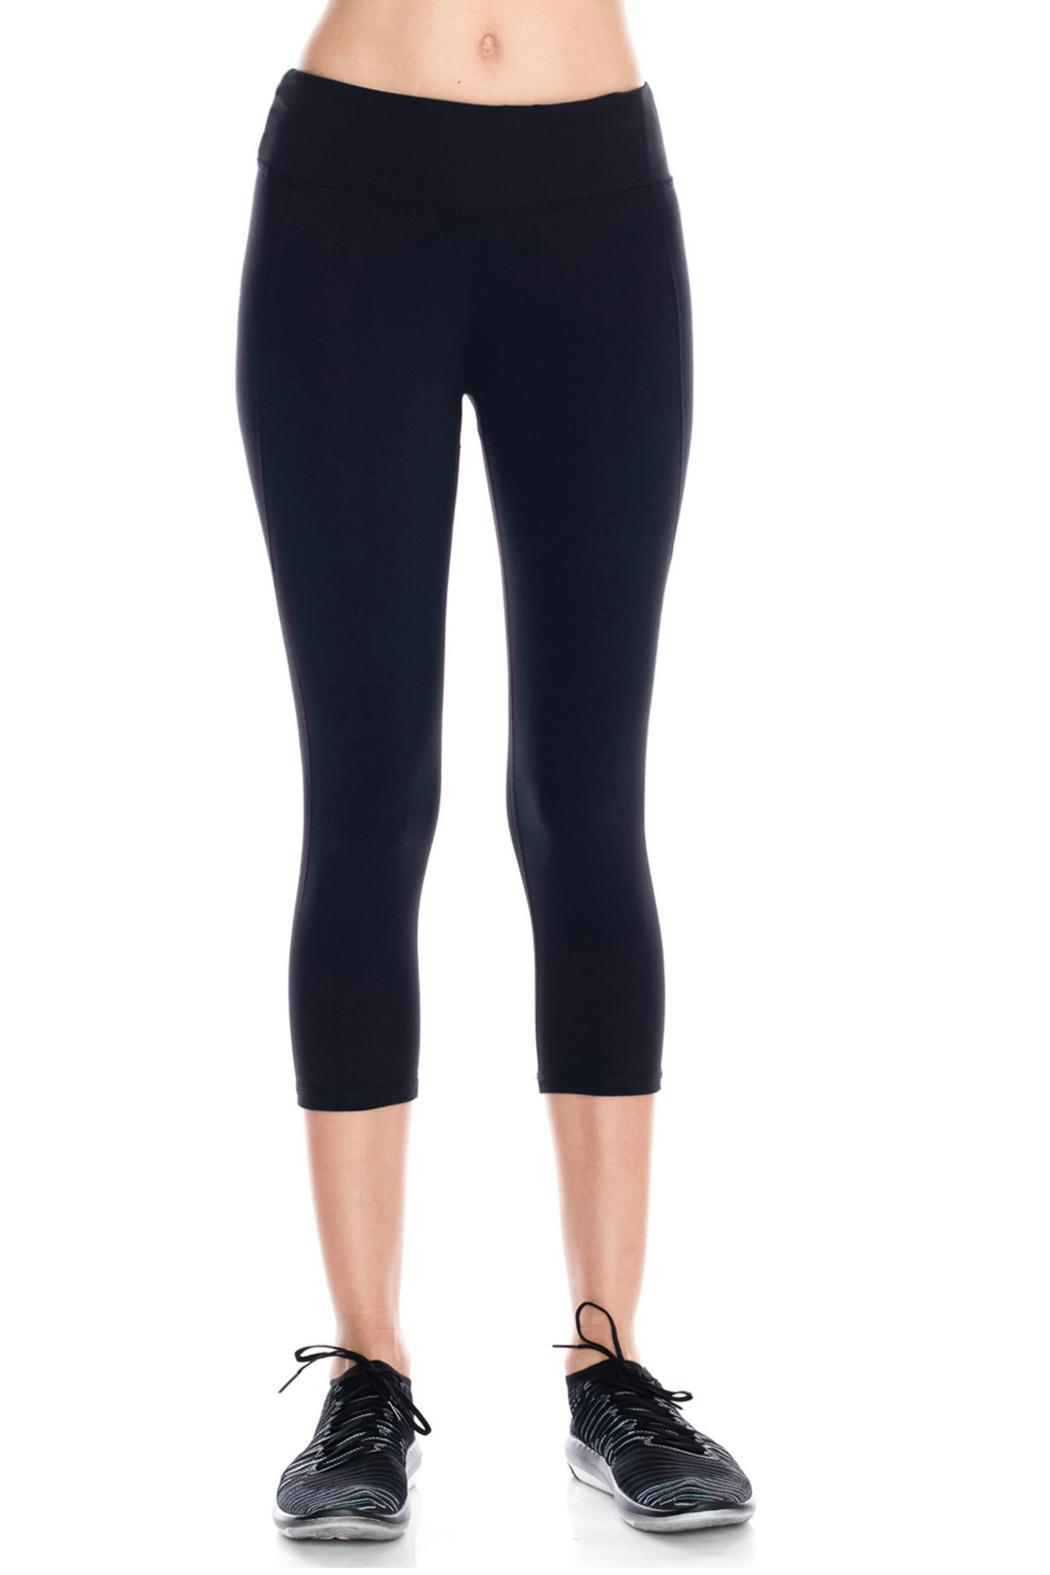 Best Capri Leggings